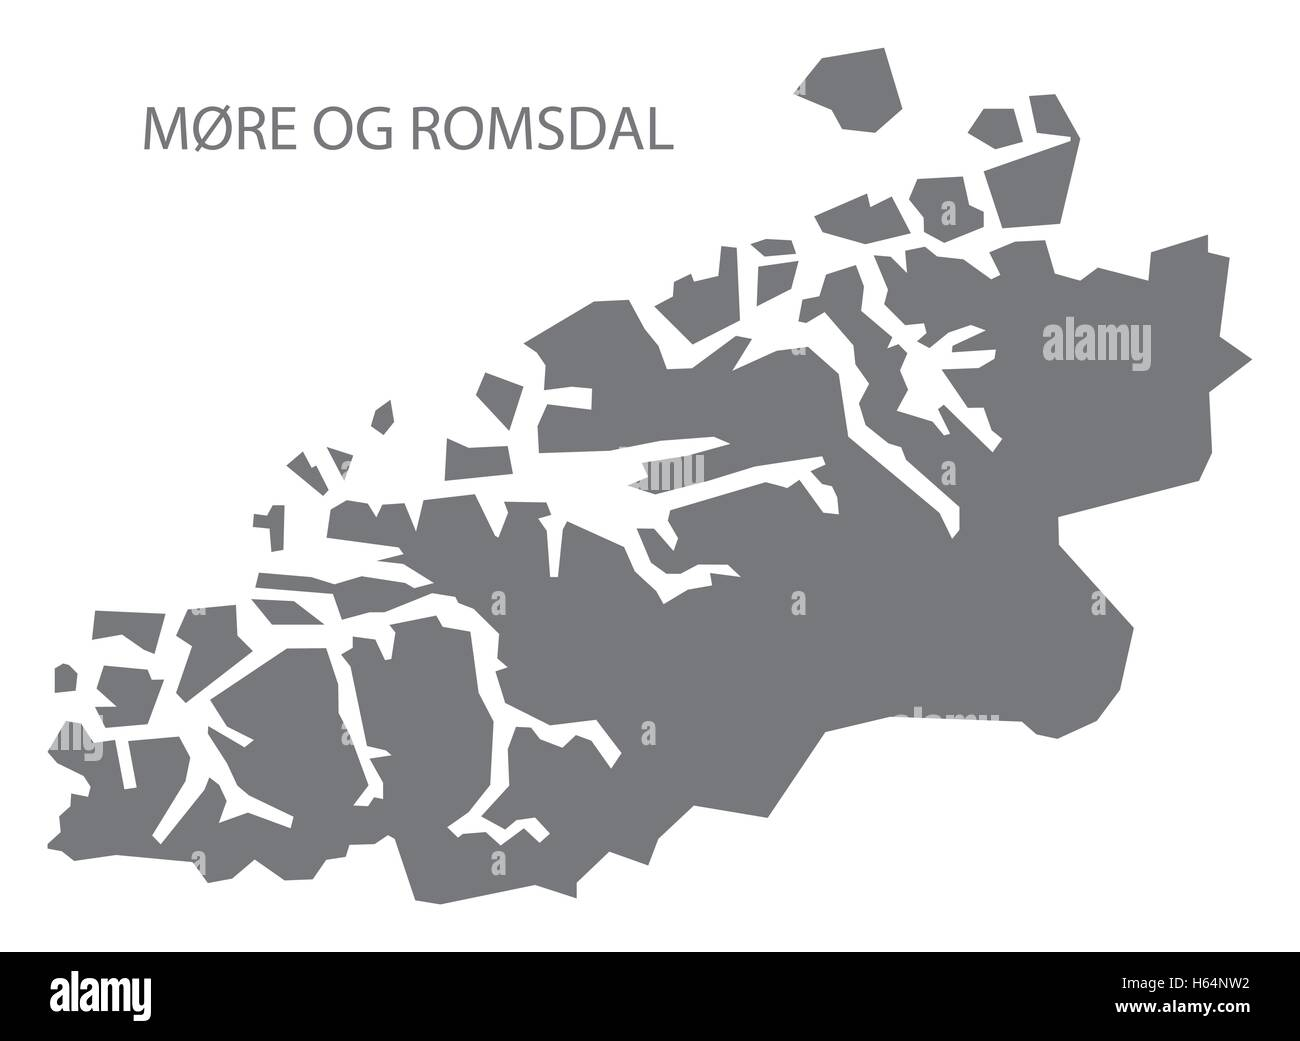 More og Romsdal Norway Map grey - Stock Image